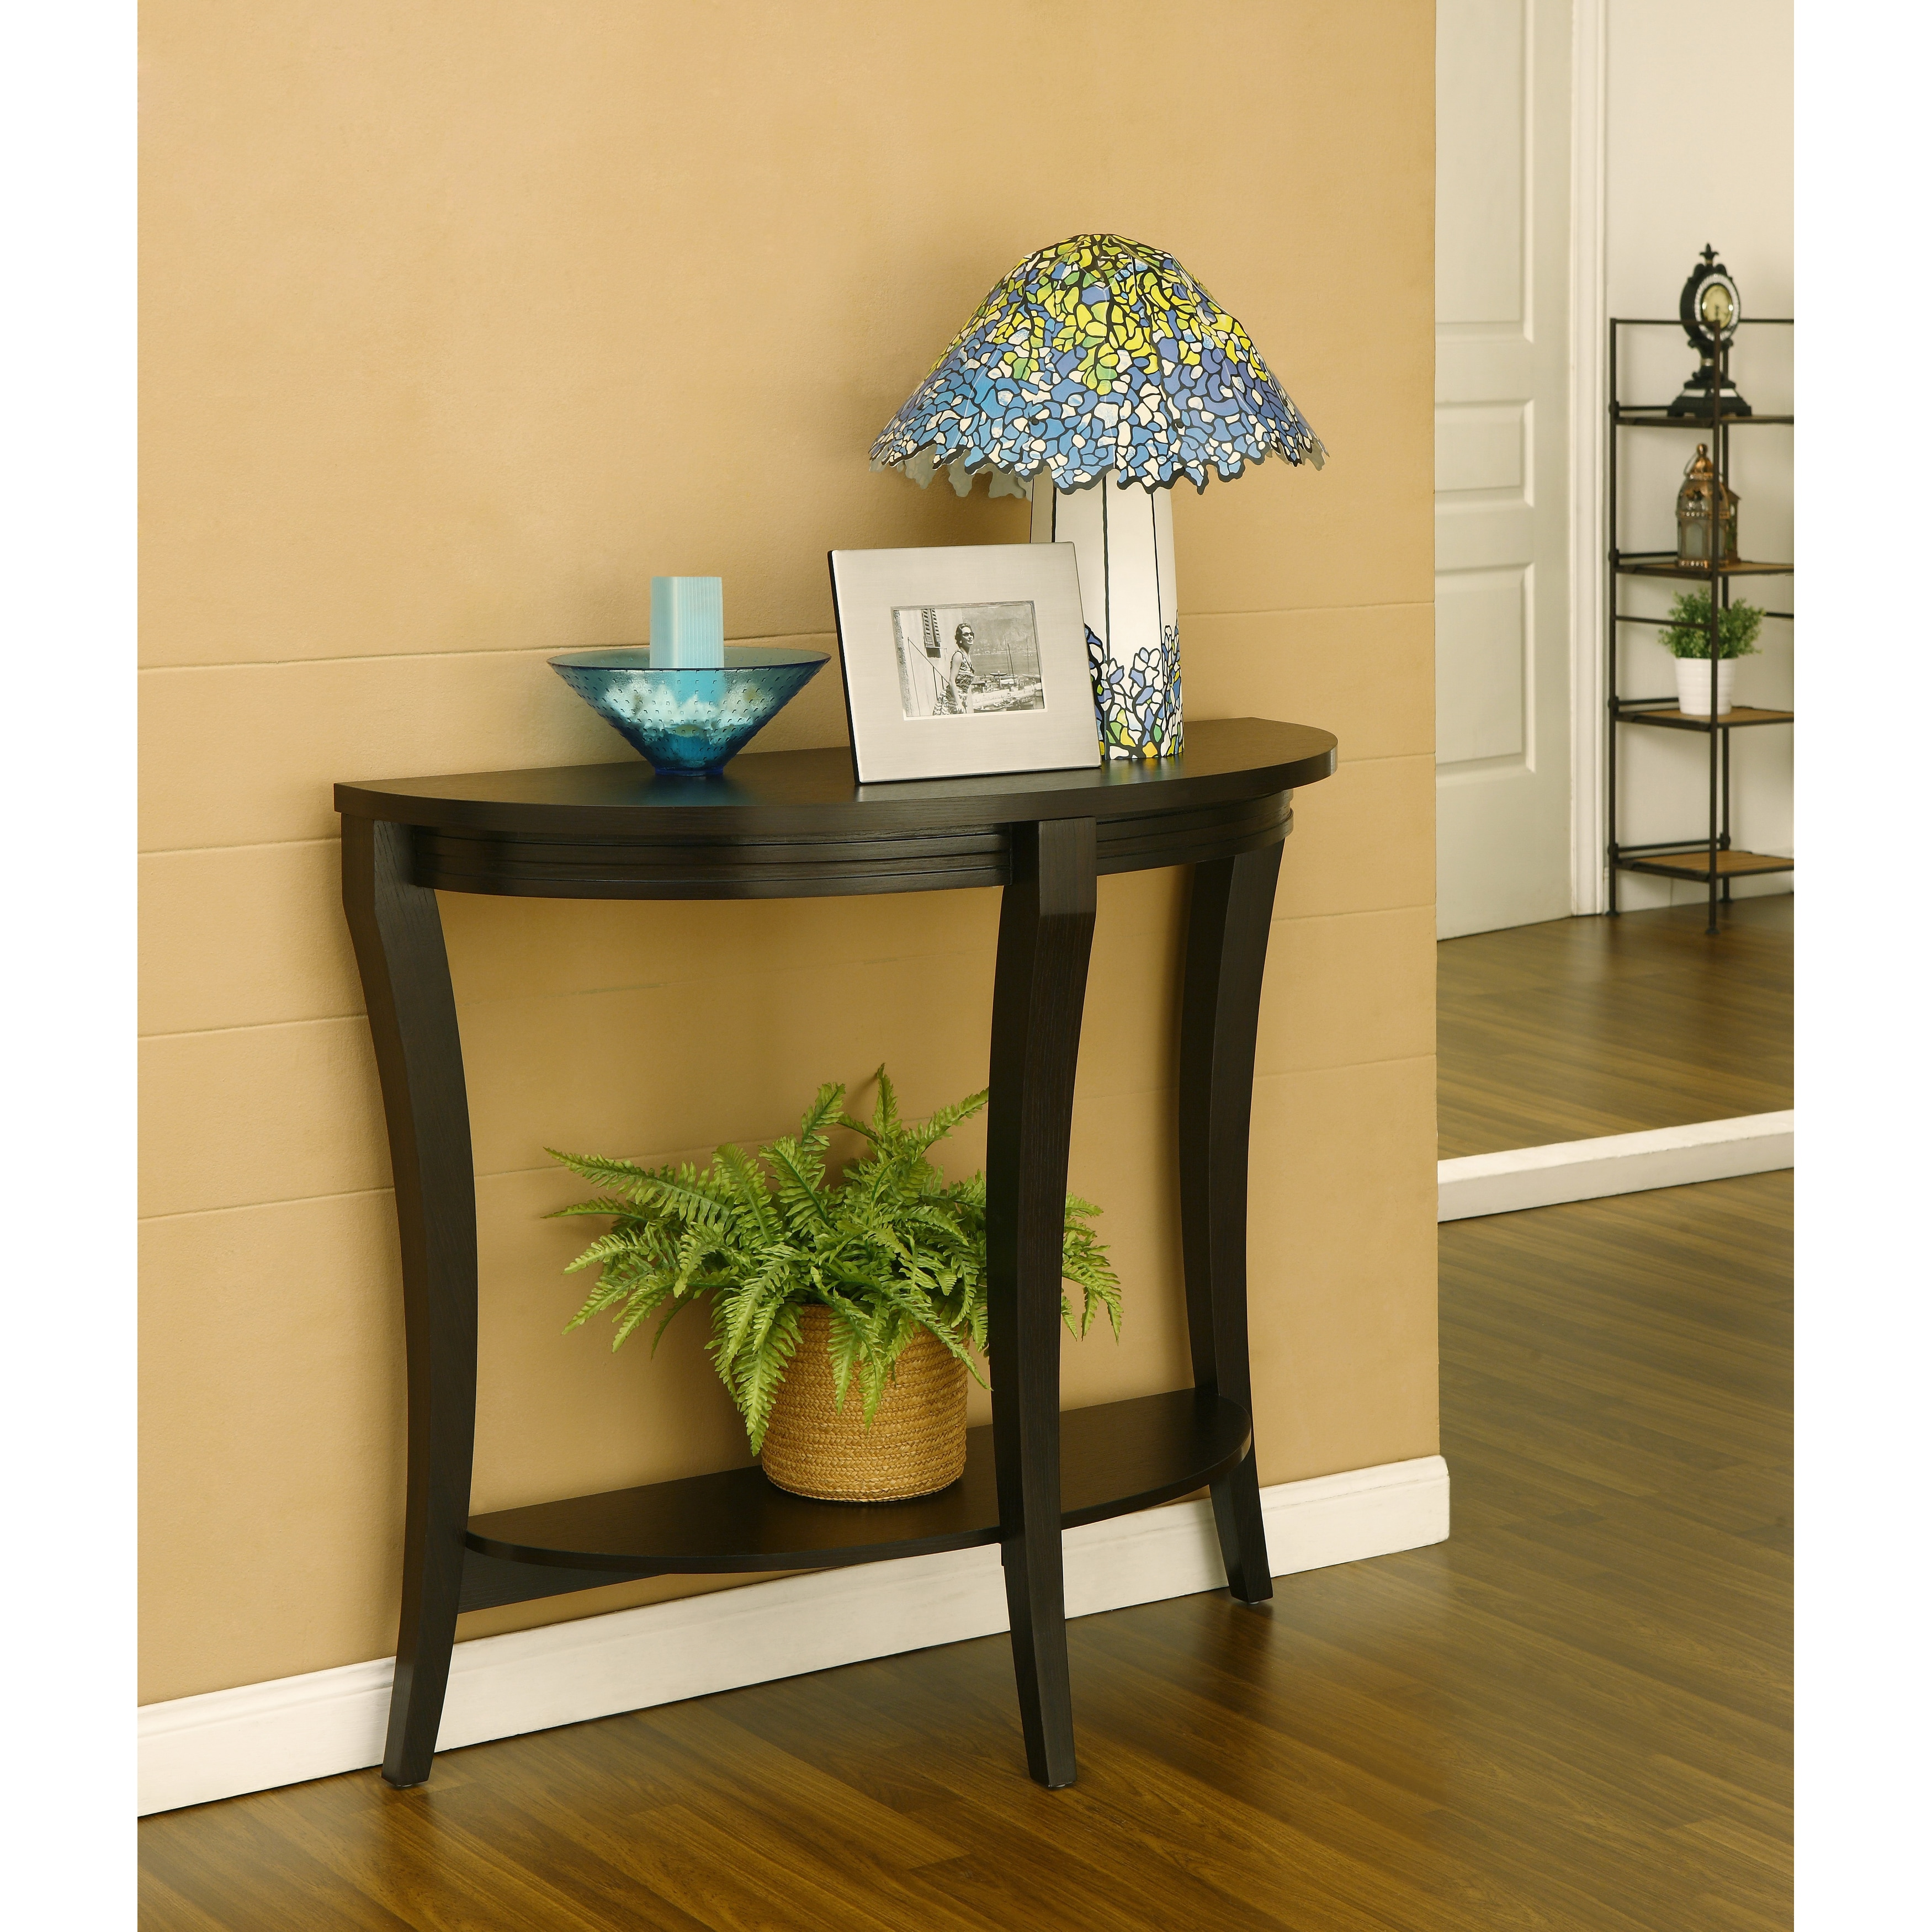 Furniture of America Renesme Half moon Sofa Table Free Shipping